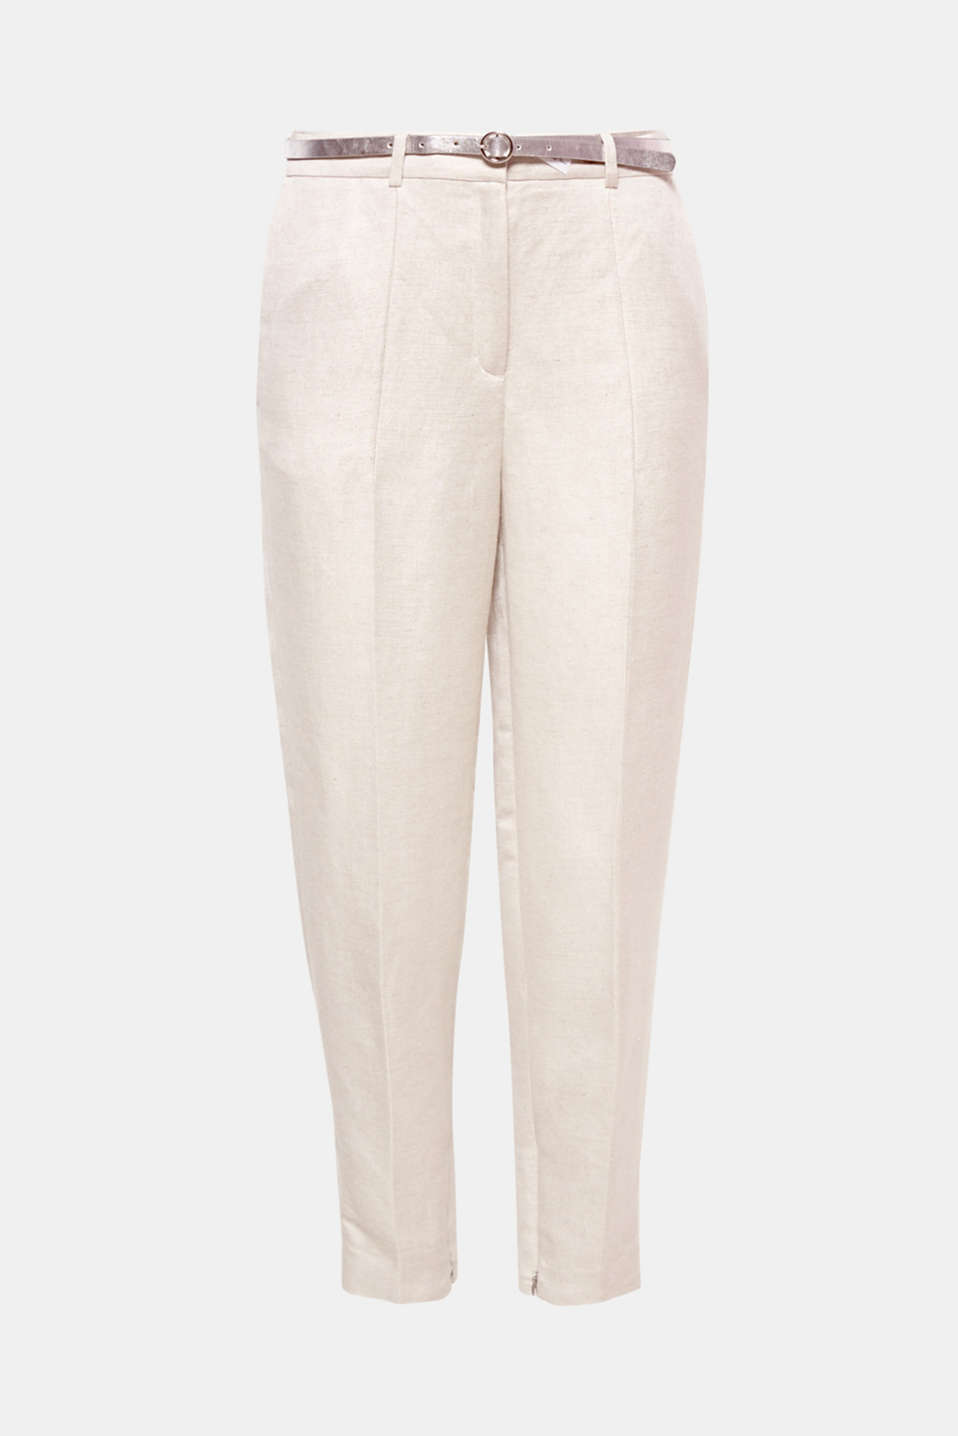 These slightly cropped linen blend trousers with an integrated belt, pressed pleats and zip details on both legs are perfect for classic, lightweight summer styling!